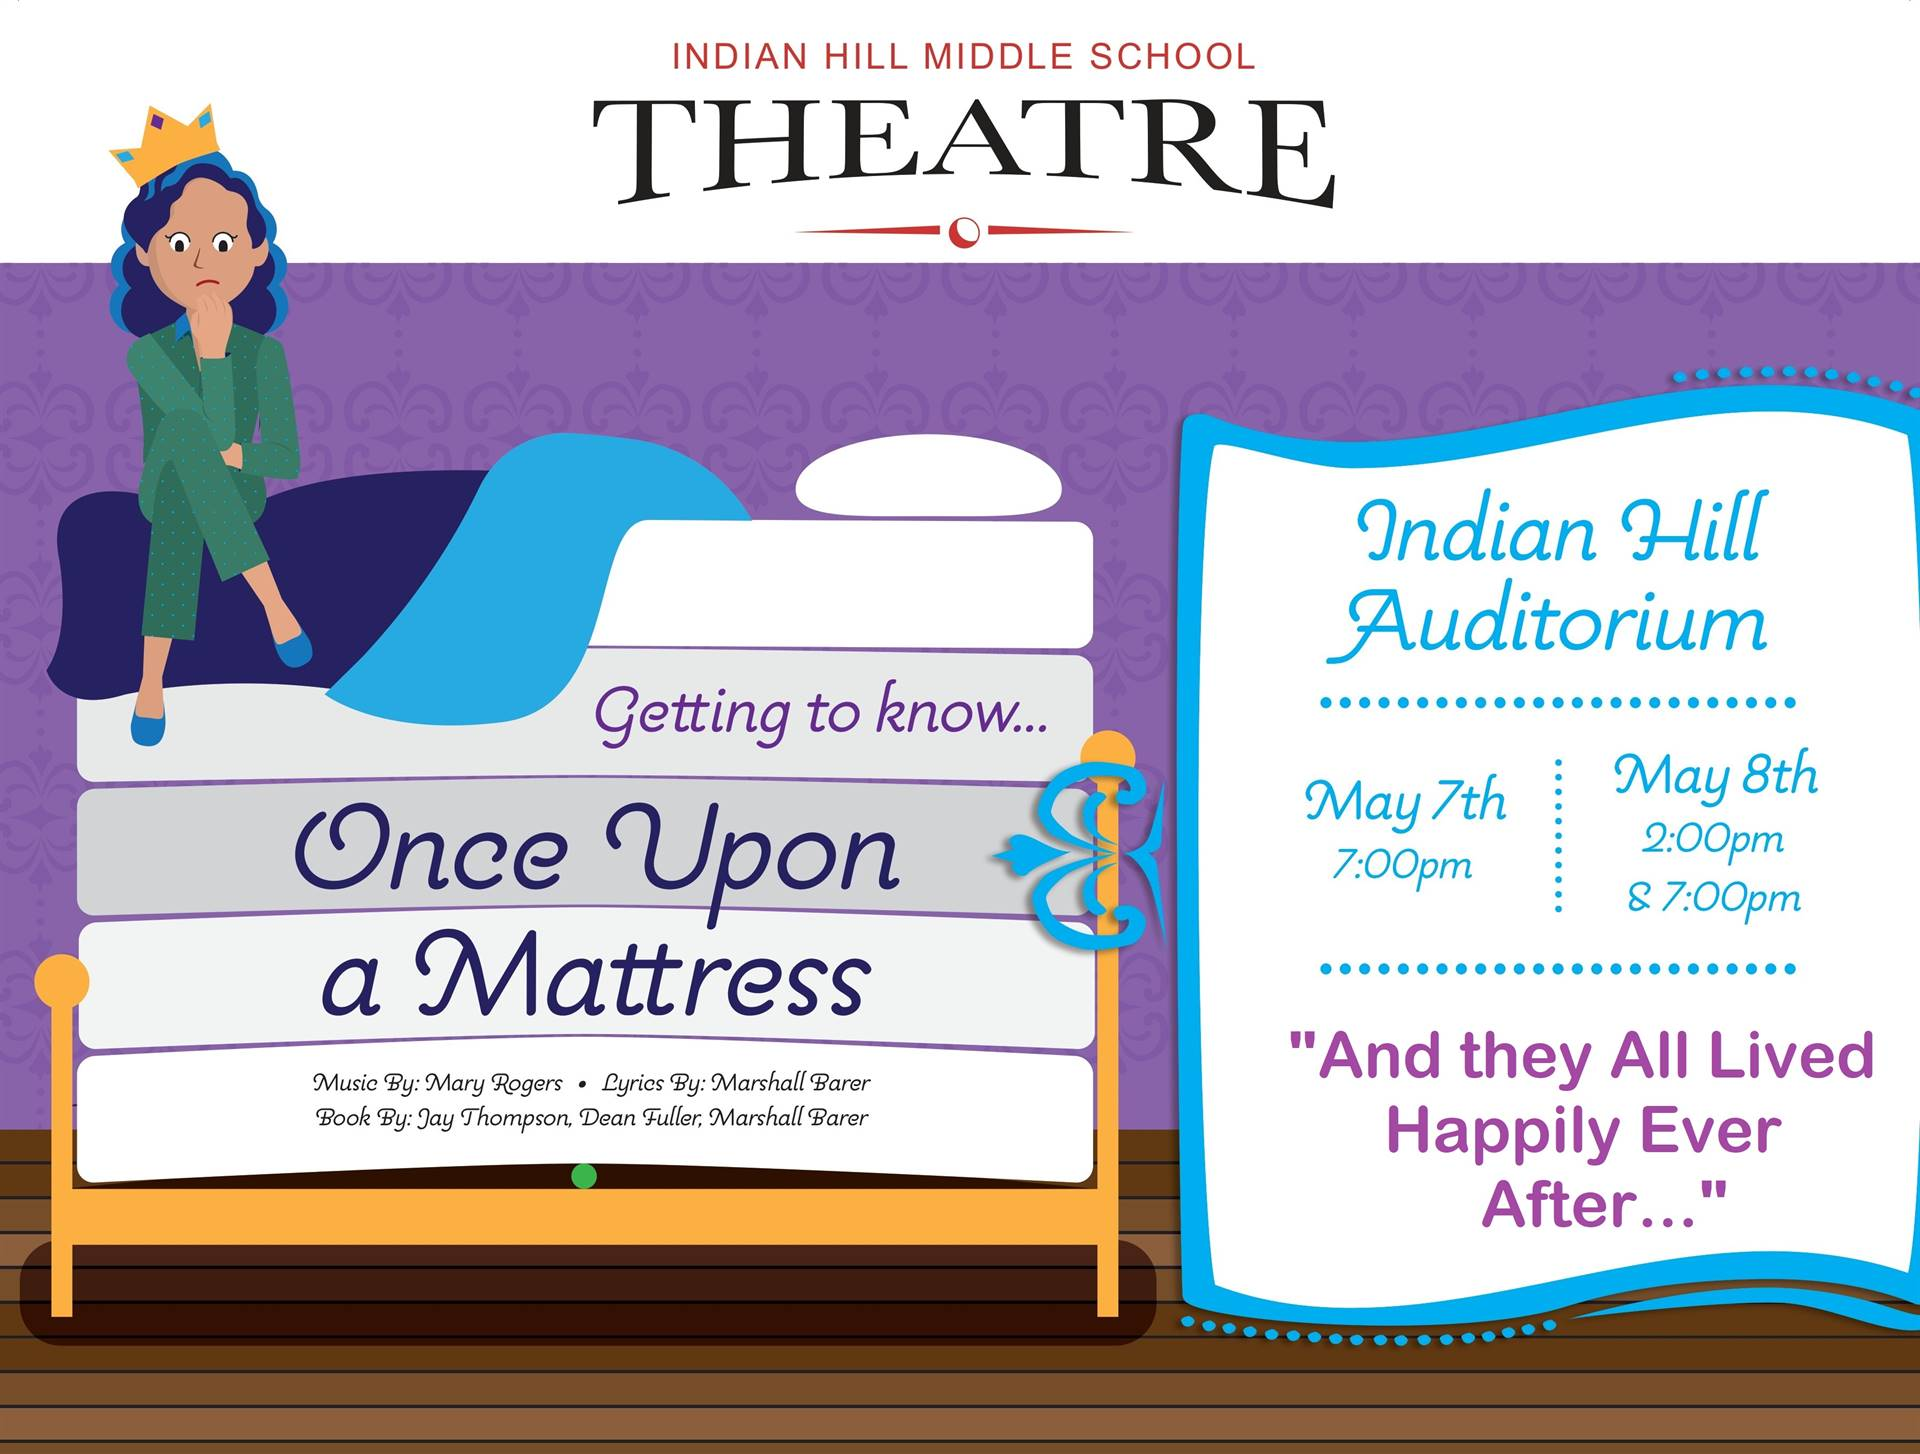 Once Upon a Mattress Poster